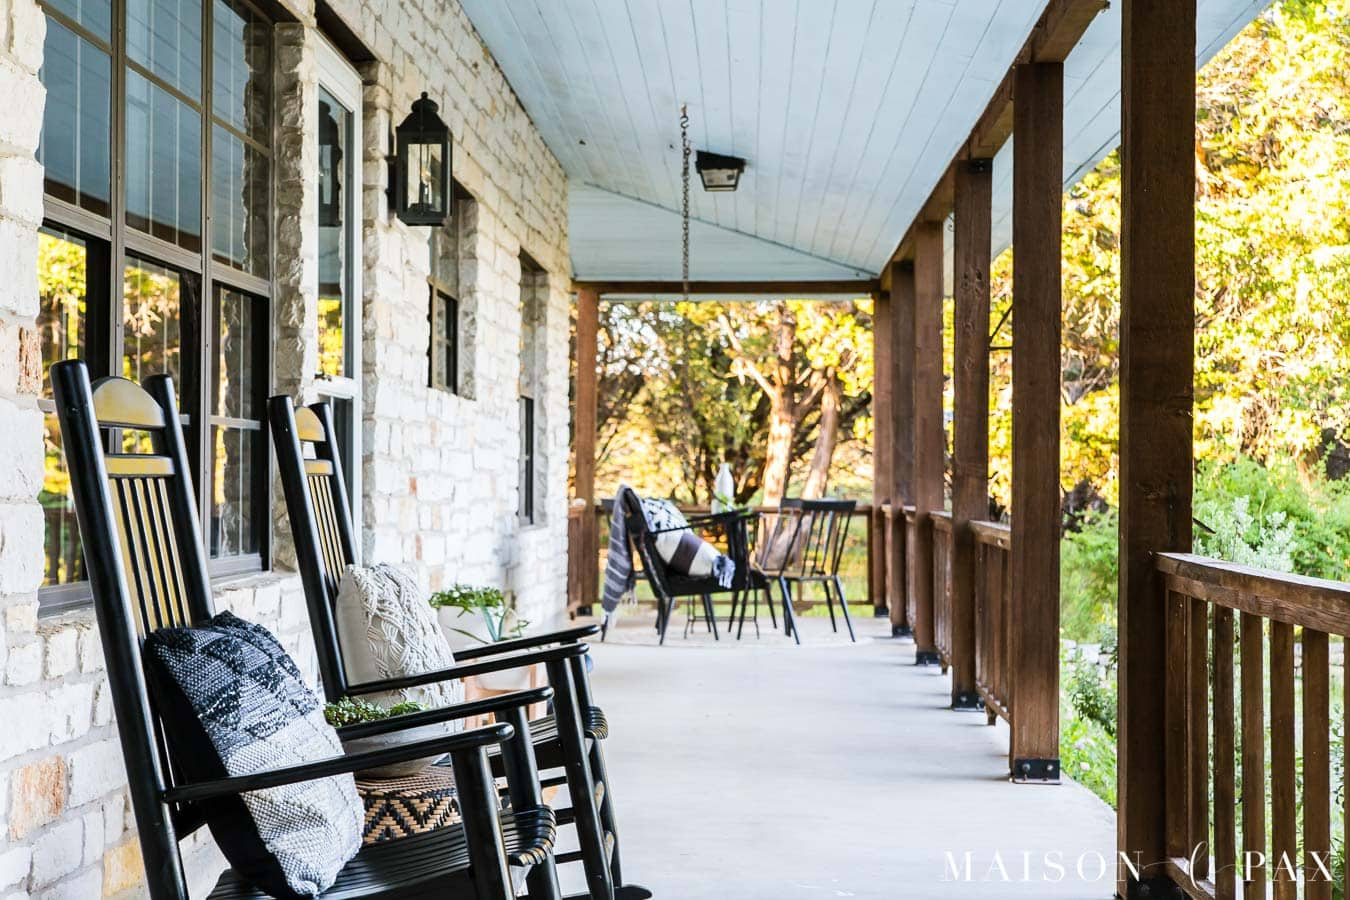 black rocking chairs on a white Austin stone porch with brown cedar posts and railings | Maison de Pax